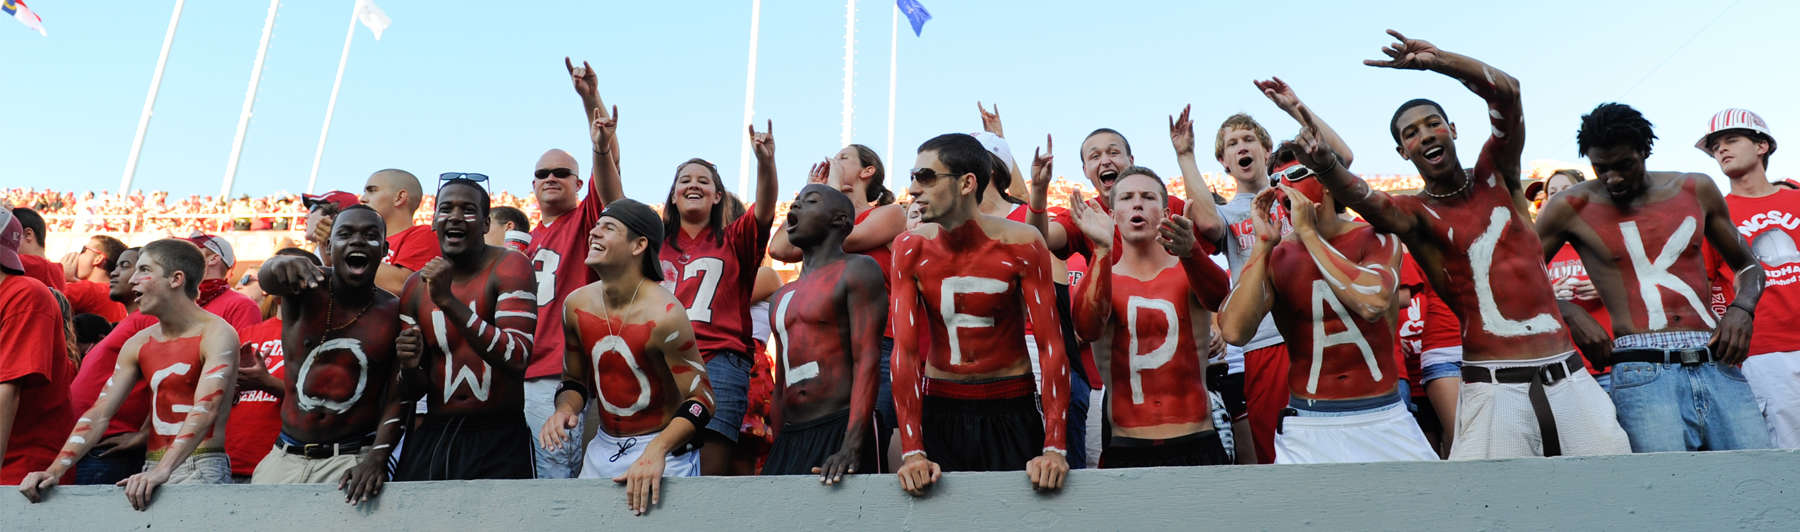 NC State fans go all-out with the red and white paint as they cheer on the Pack during a game against Western Carolina at Carter-Finley stadium in September of 2010.